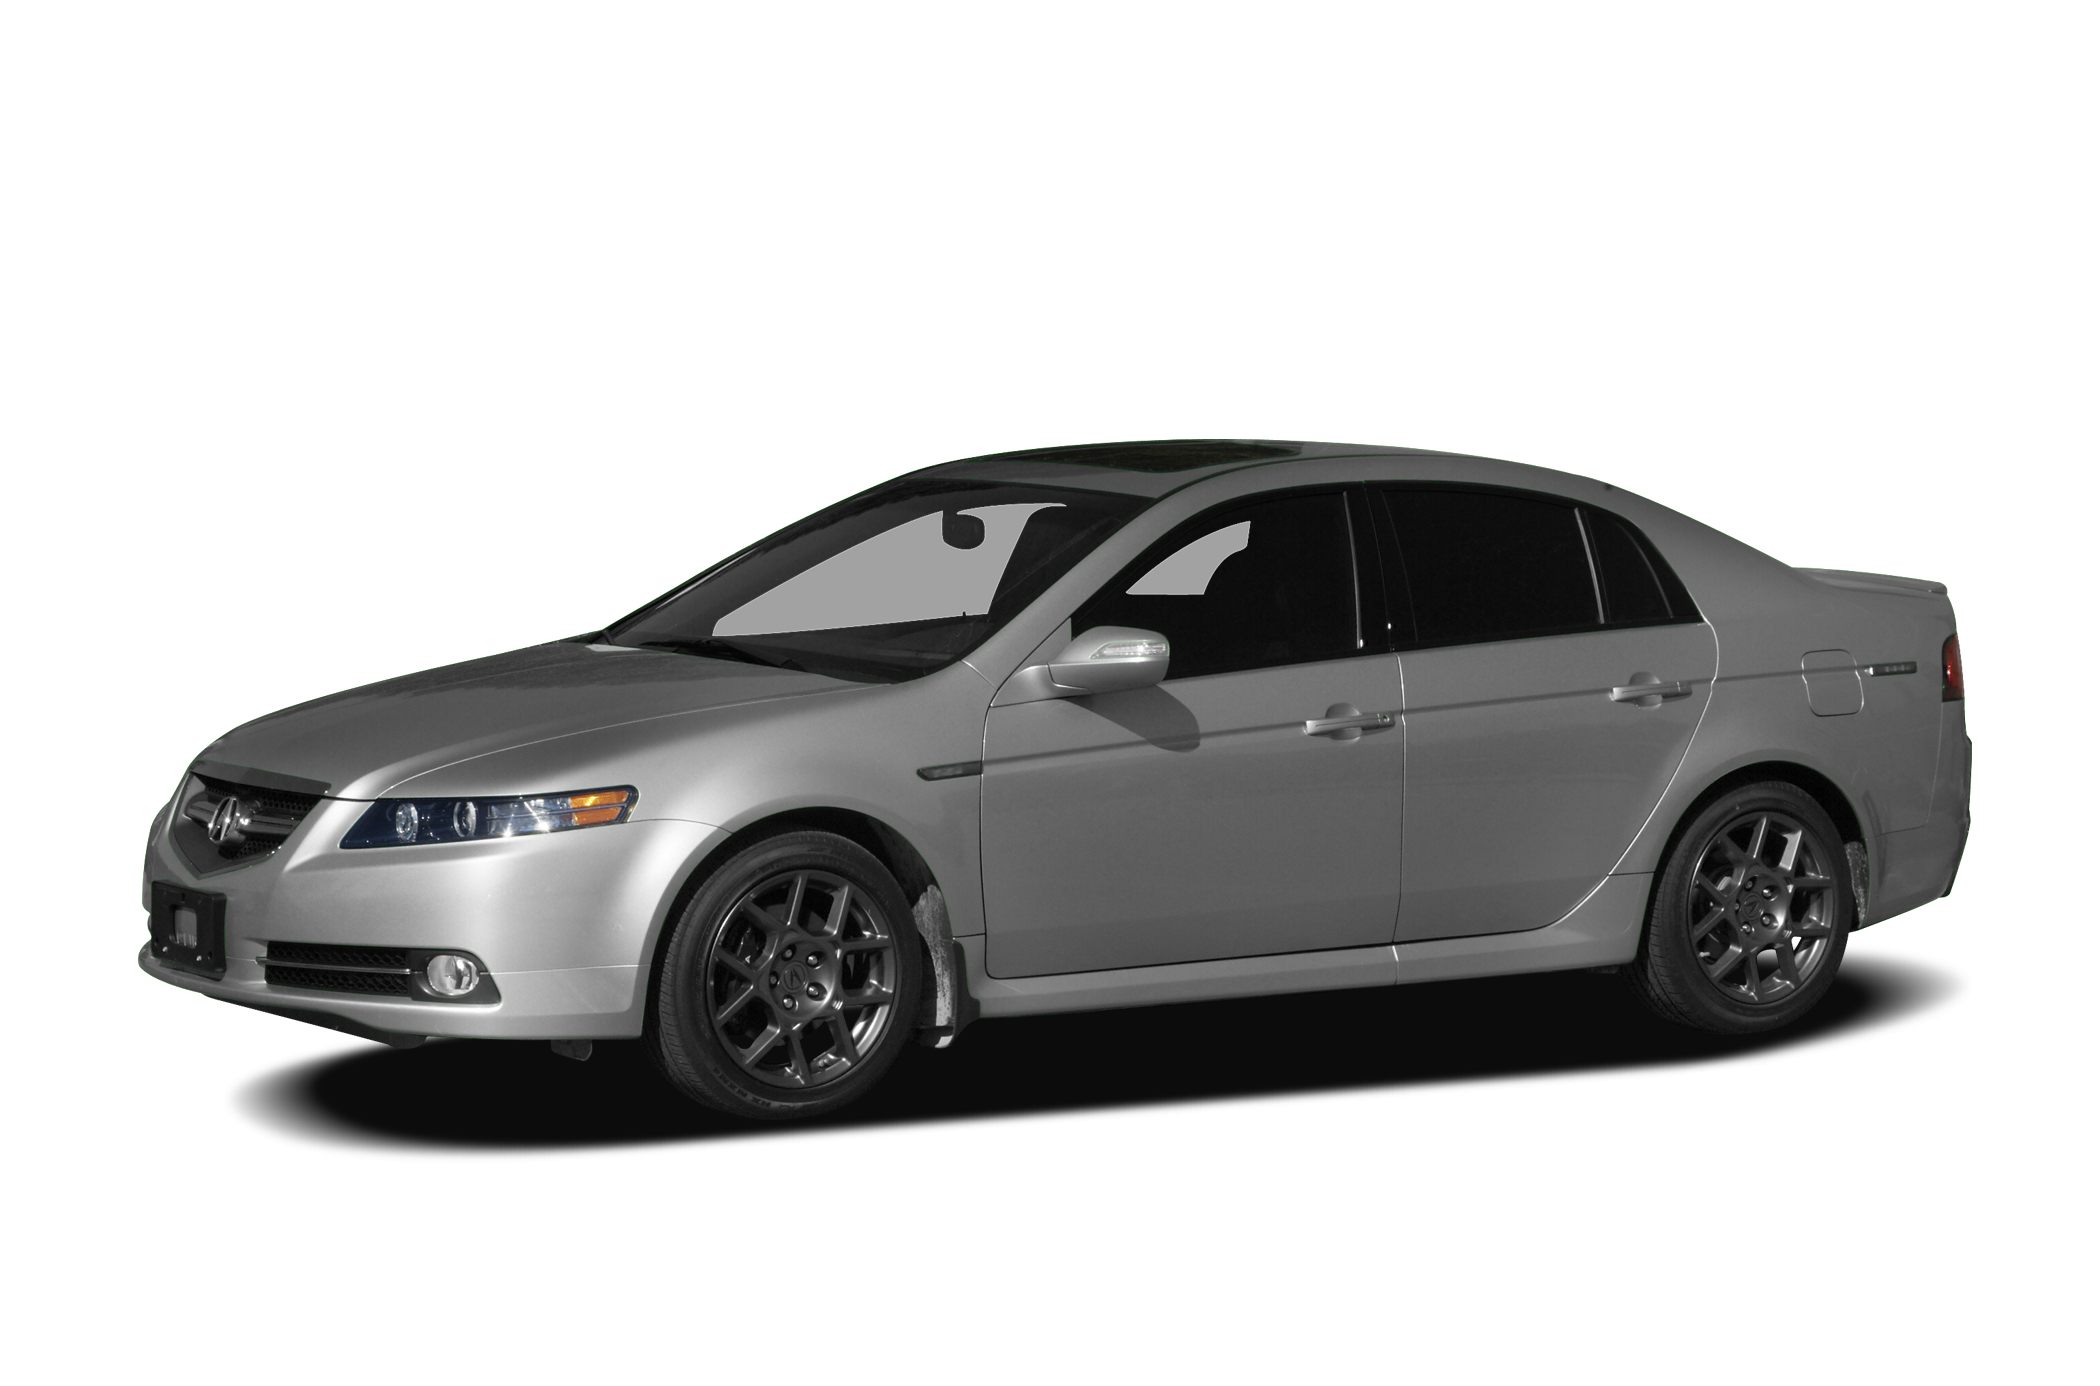 2008 Acura TL Specs Safety Rating & MPG CarsDirect